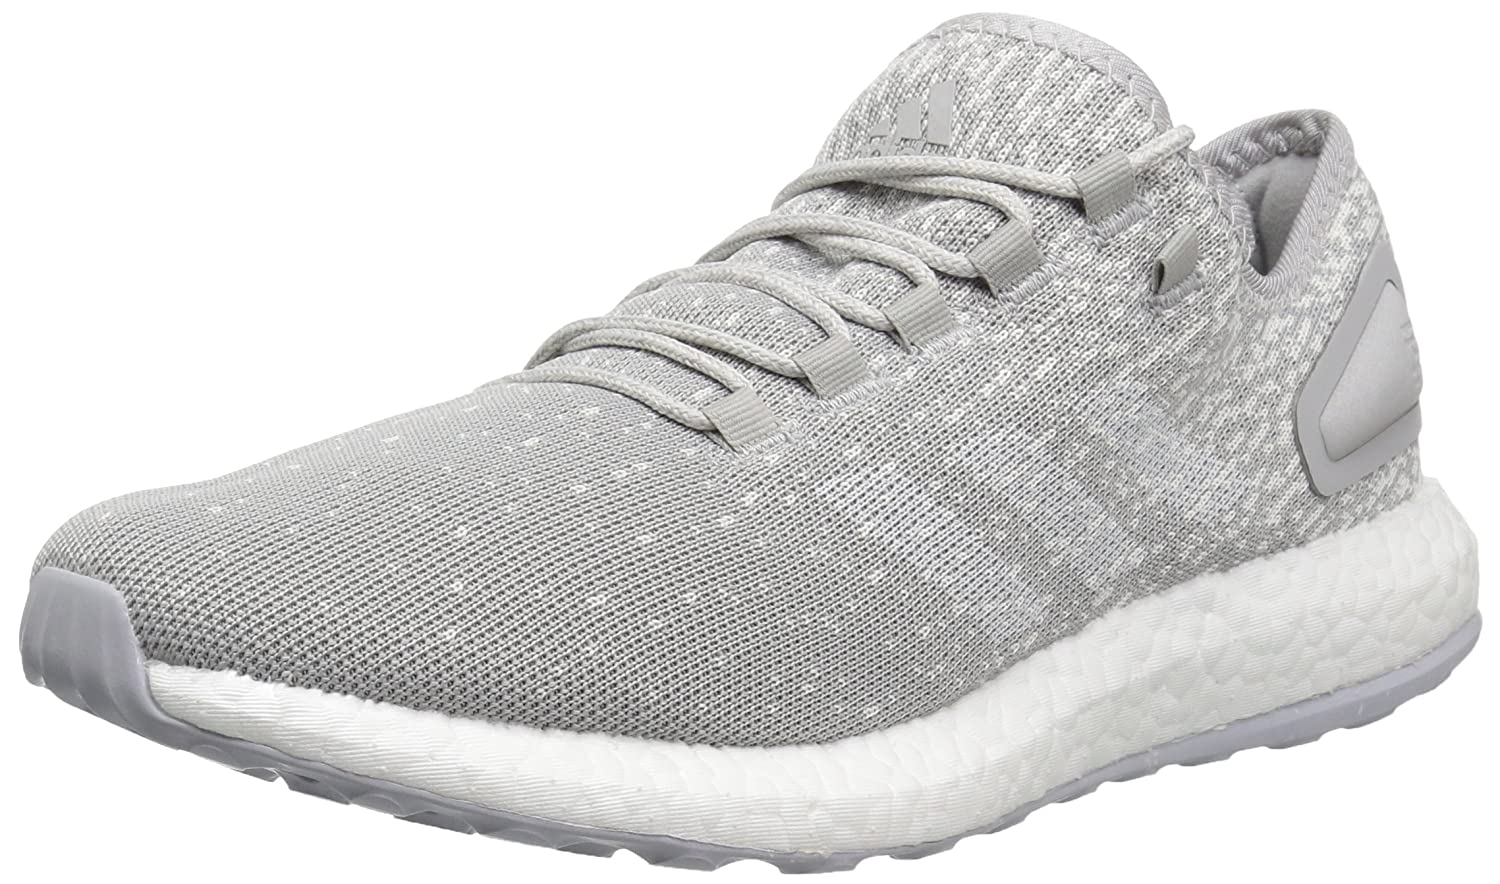 sports shoes a3306 be749 Amazon.com  adidas Mens Pureboost Reigning Champ m Running Shoe  Road  Running